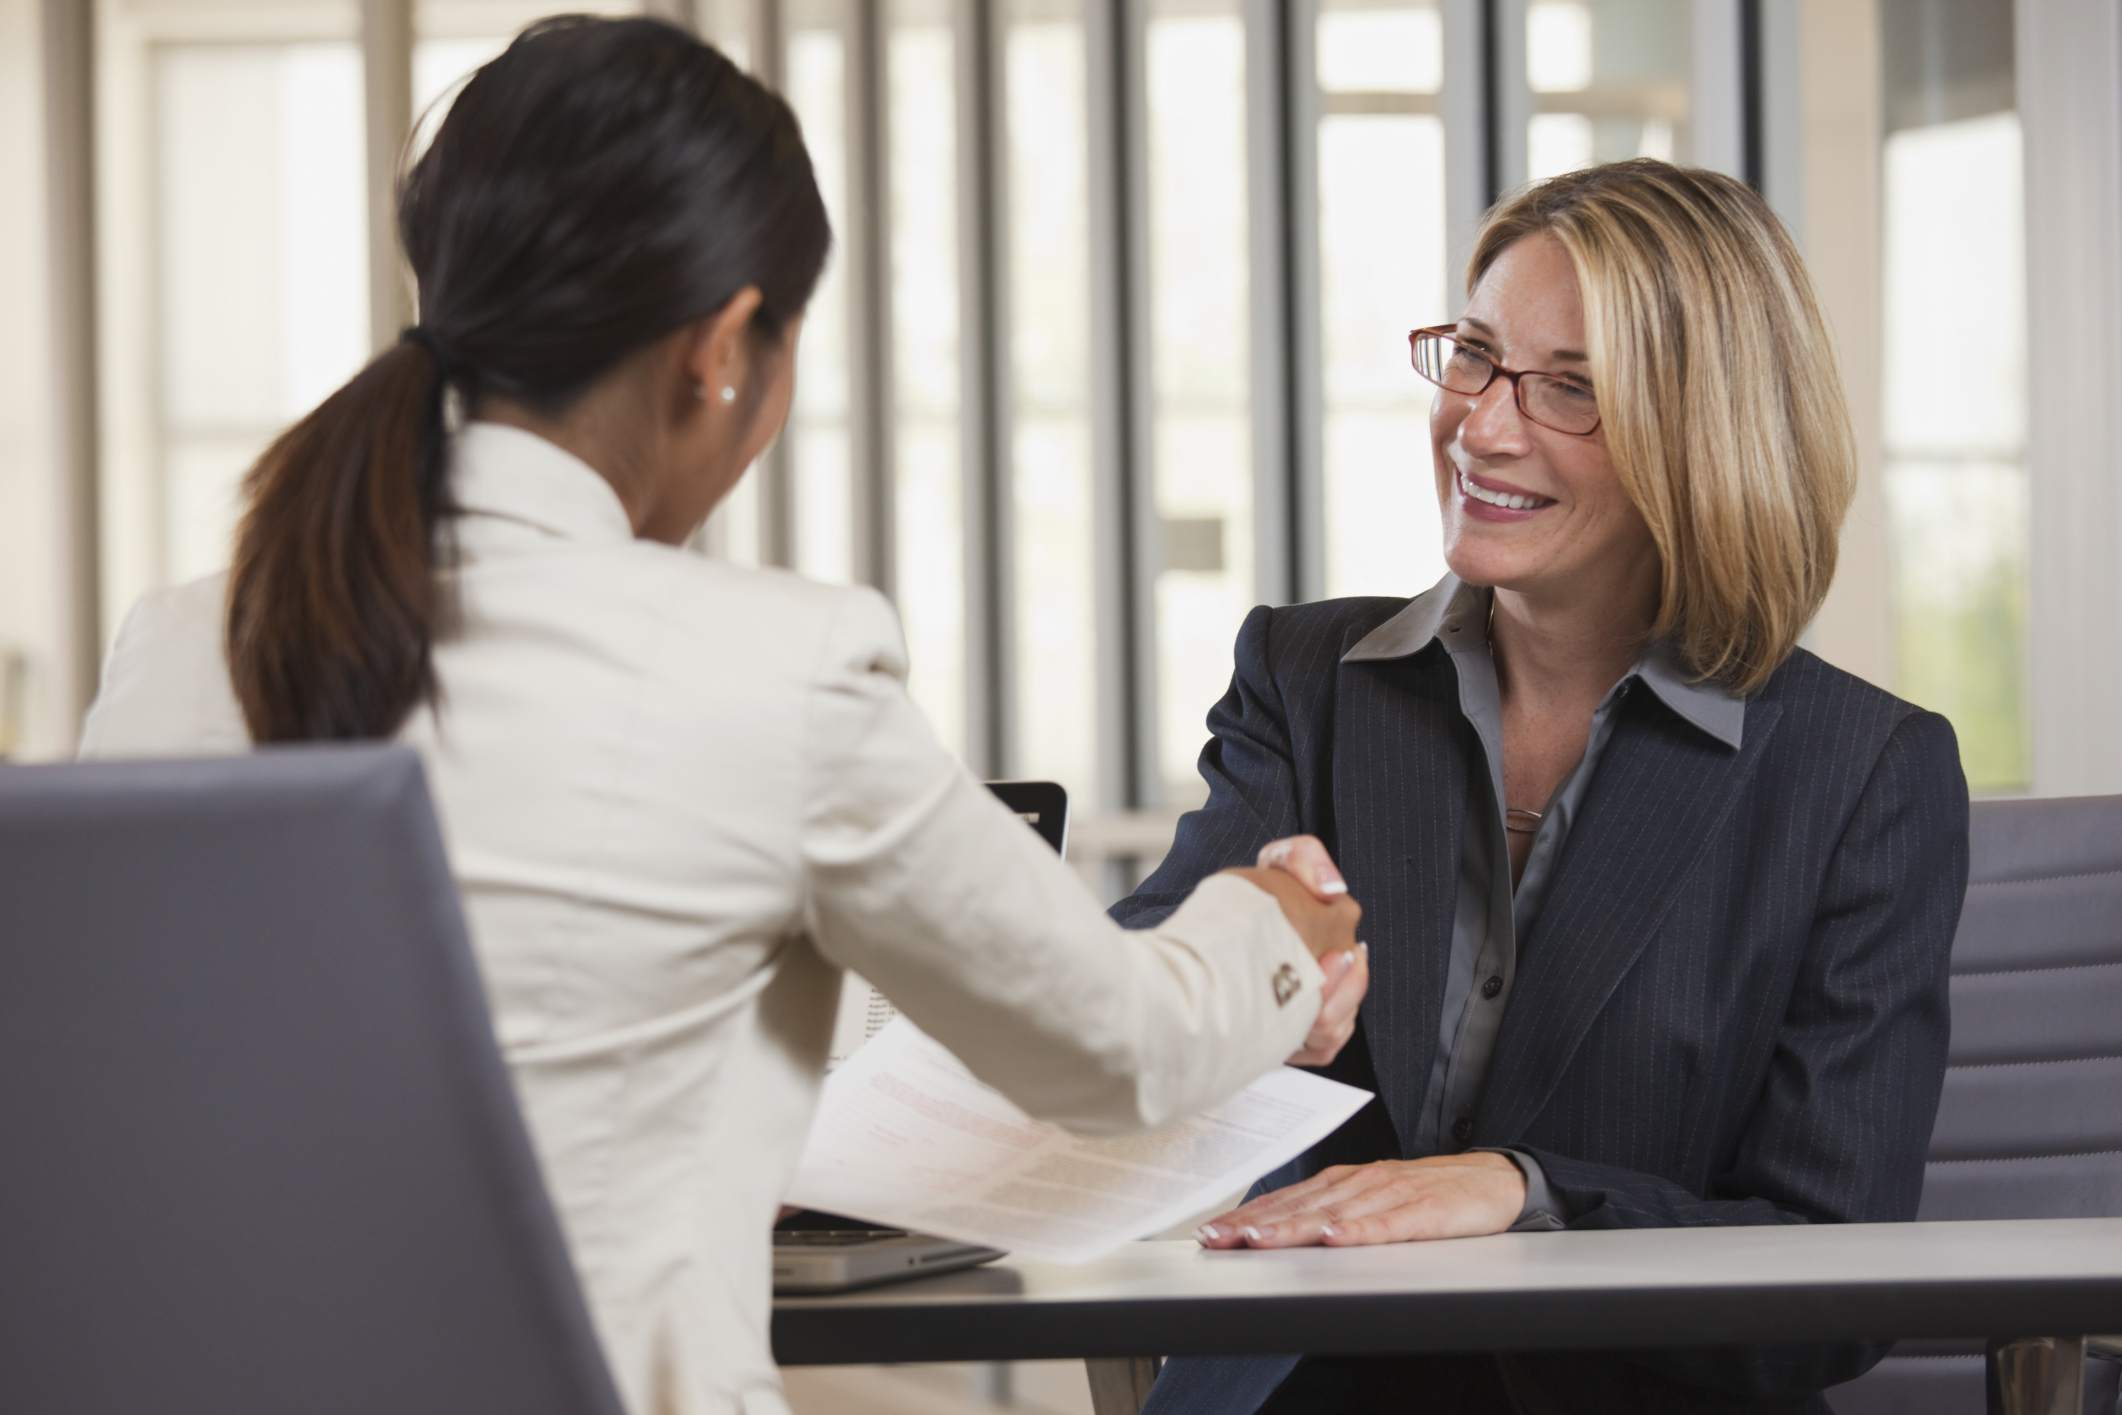 A formal recognition and thank you letter and a congratulatory handshake are exchanged by to female employees.